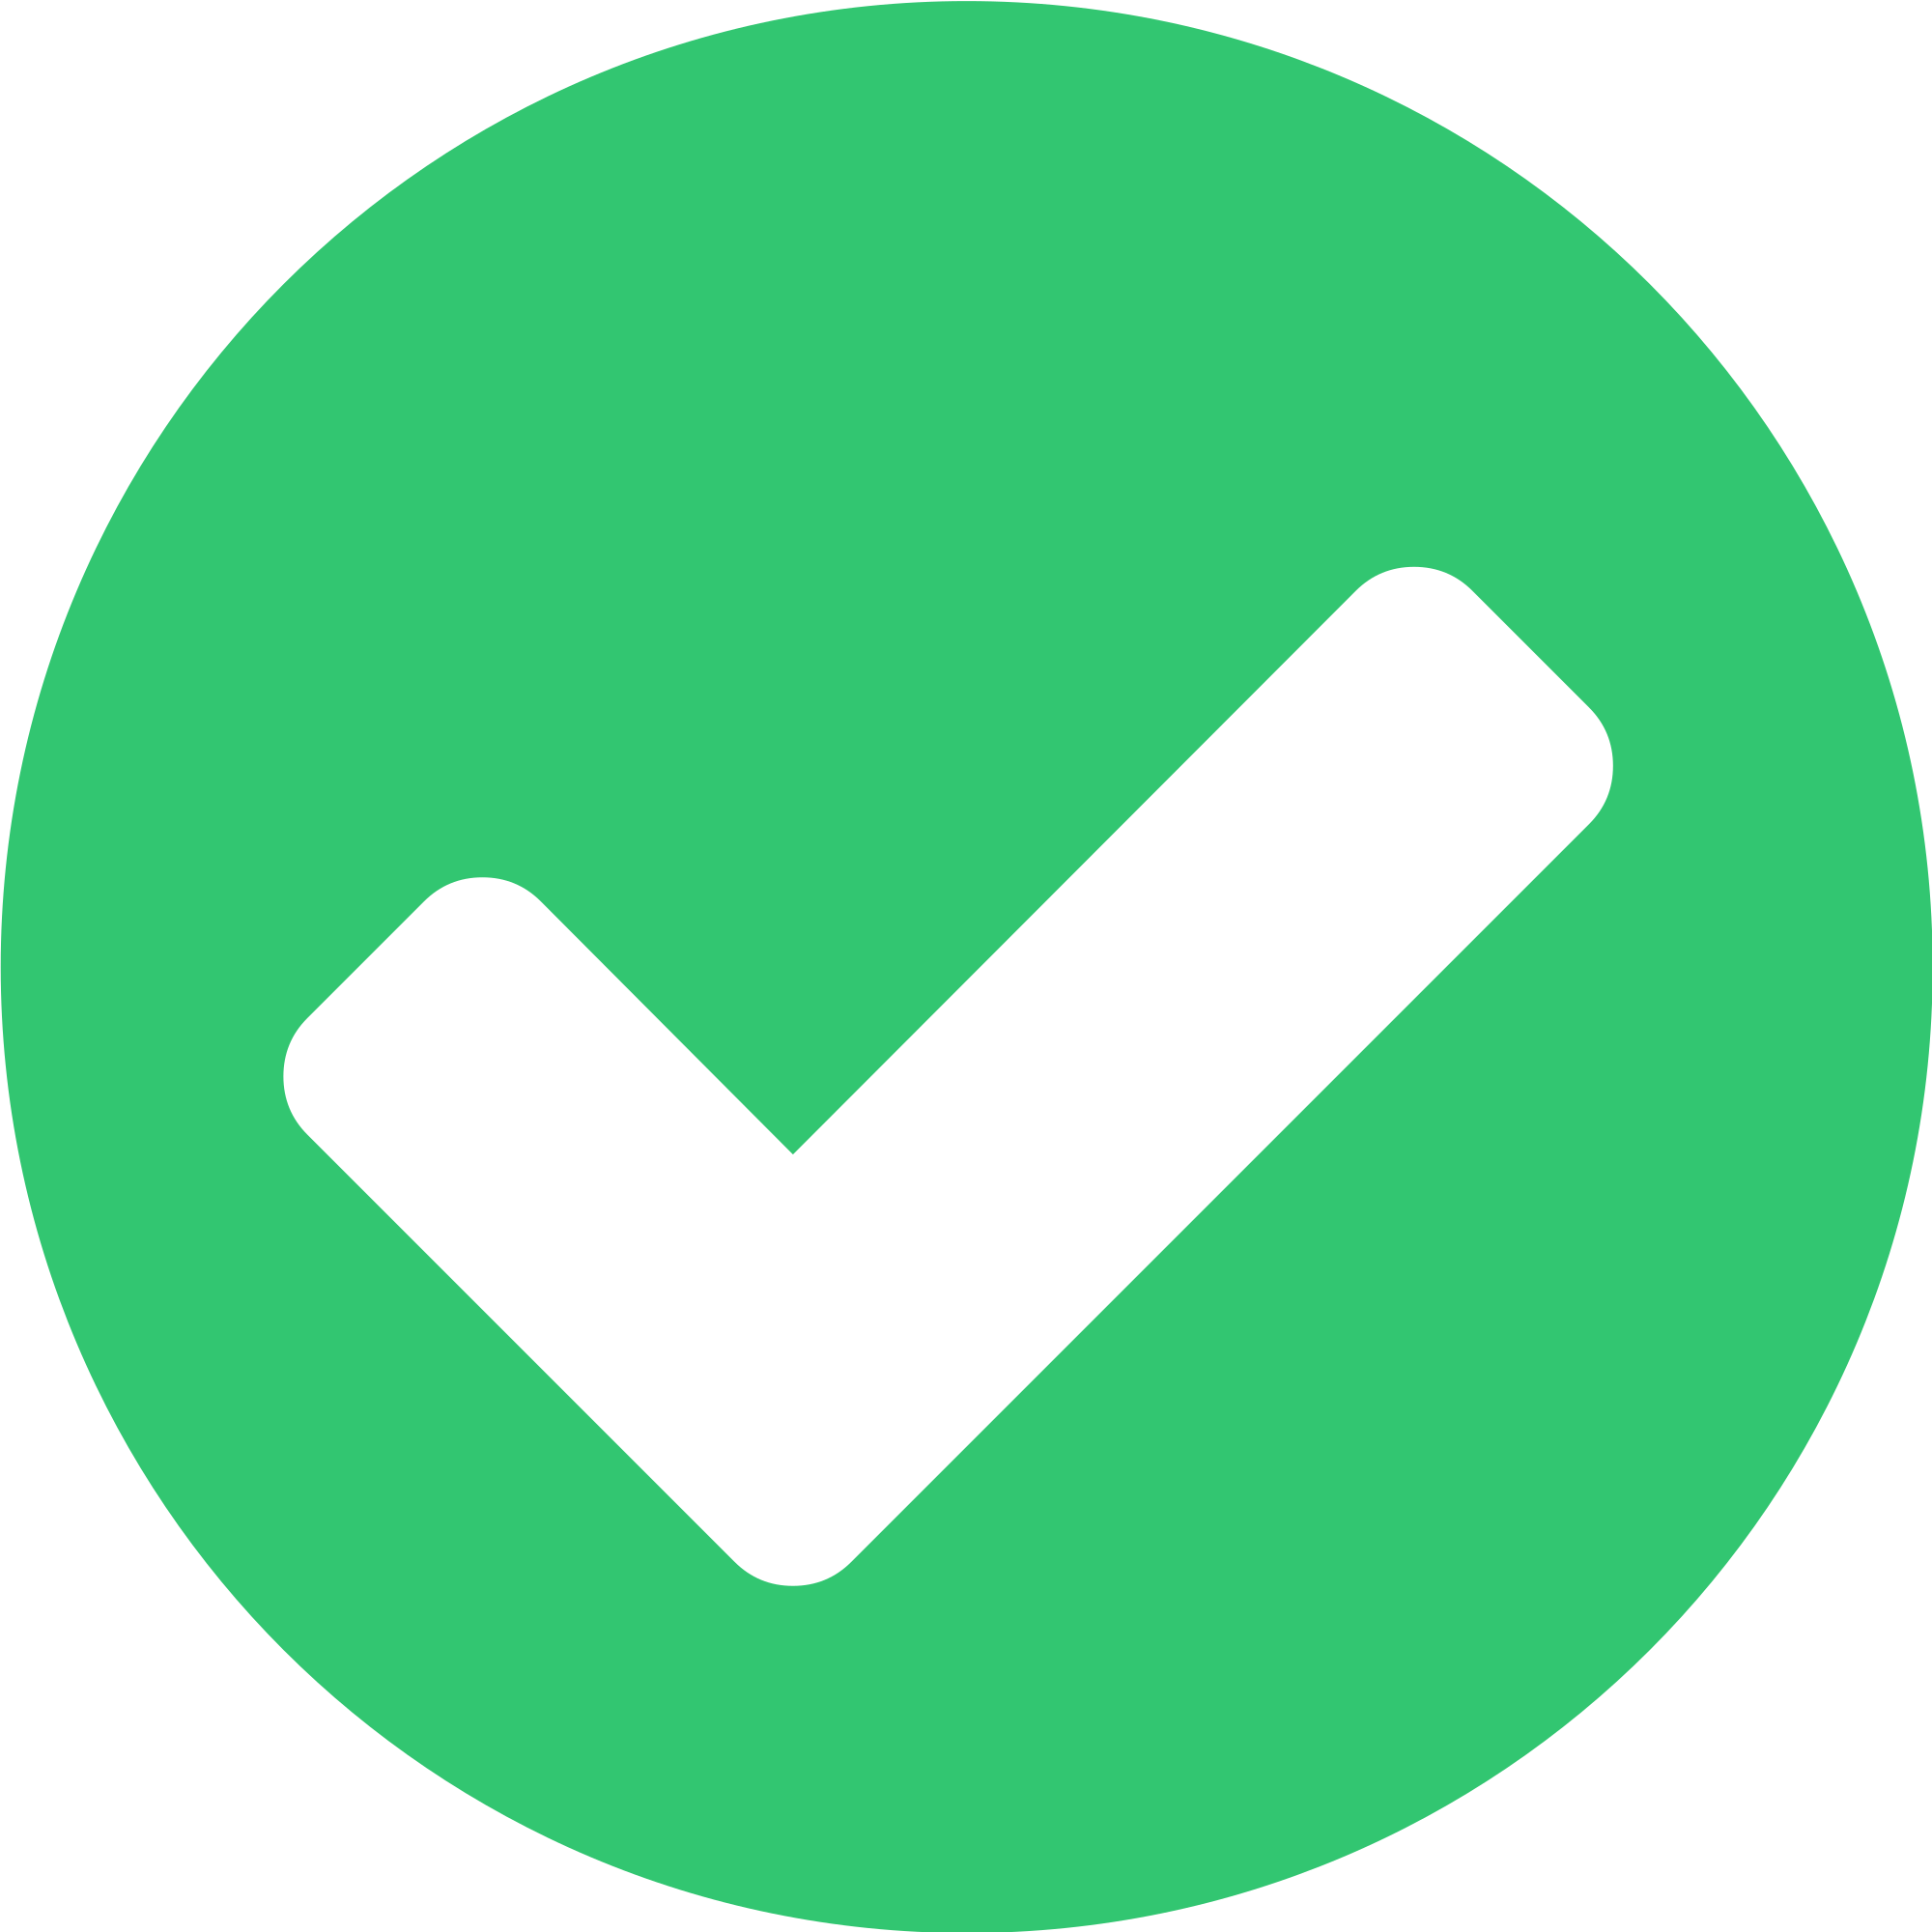 Svg checkmark flat. File tick icon wikimedia